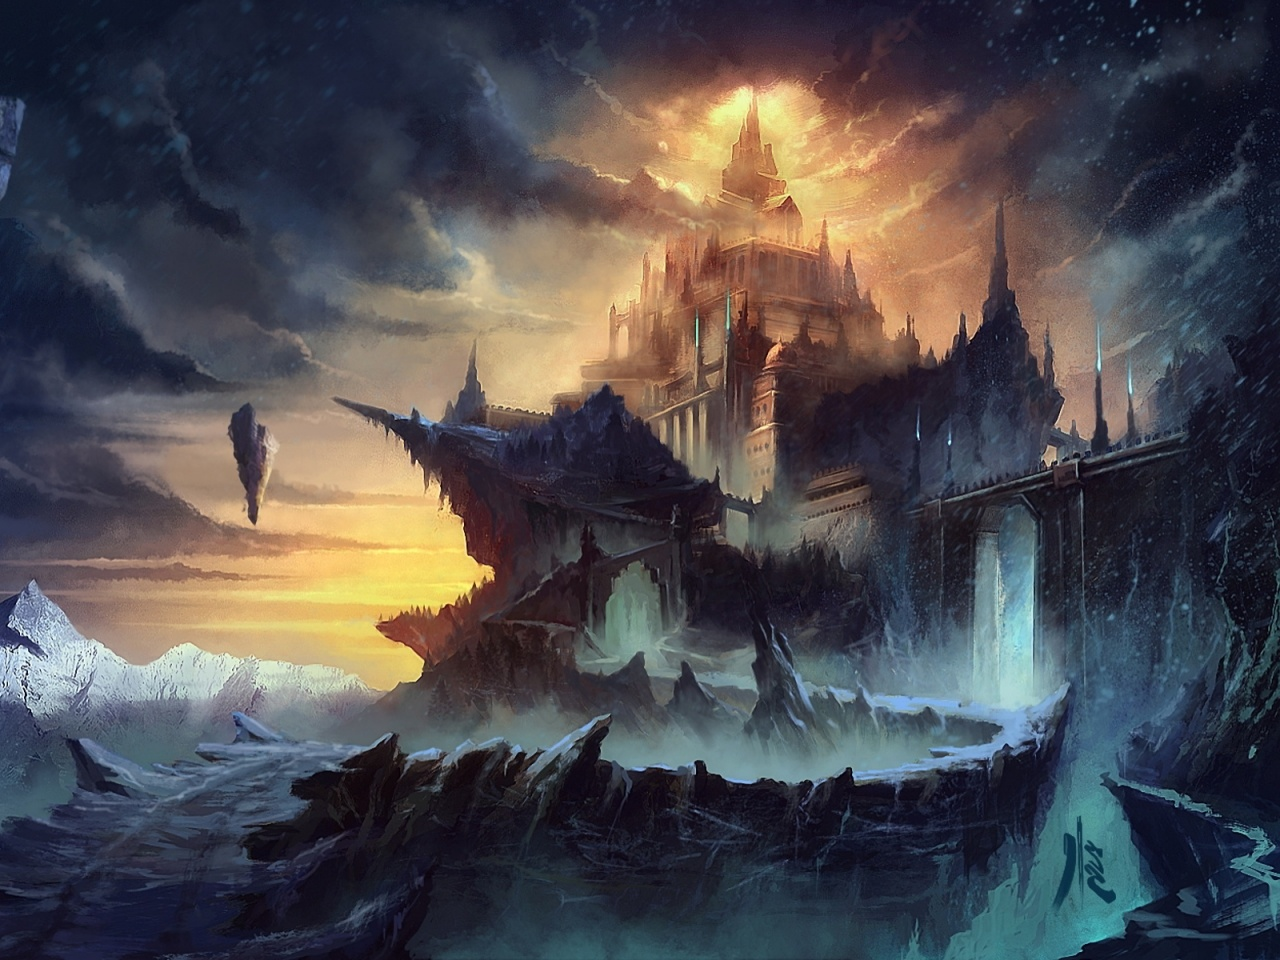 1280x960px fantasy world wallpaper - wallpapersafari